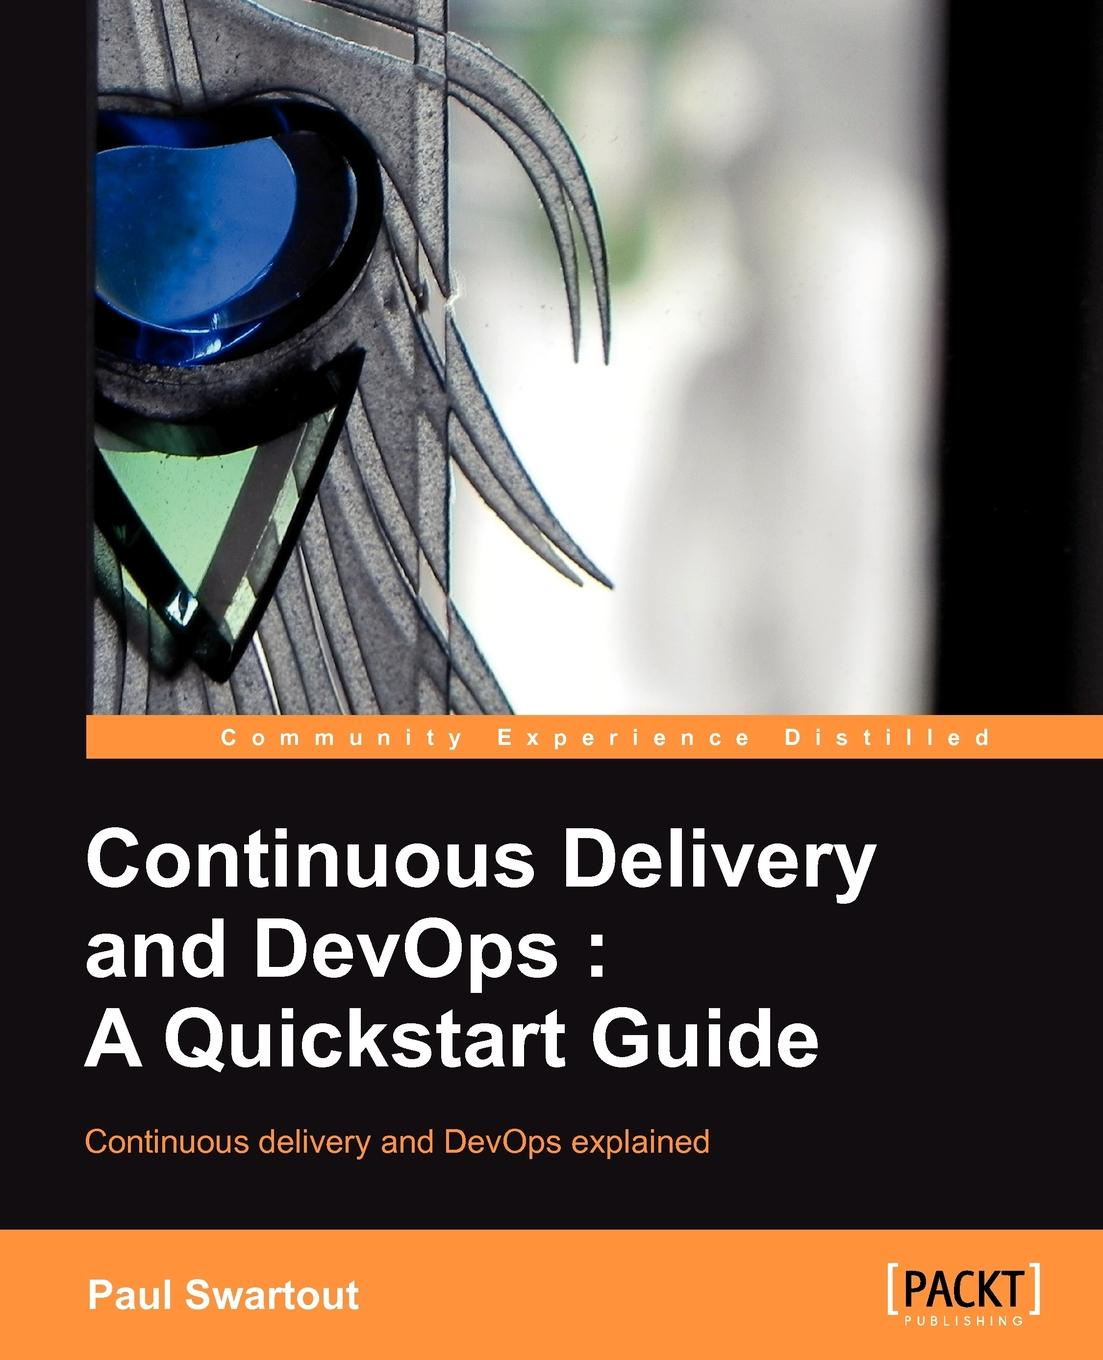 Paul Swartout Continuous Delivery and DevOps. A QuickStart Guide